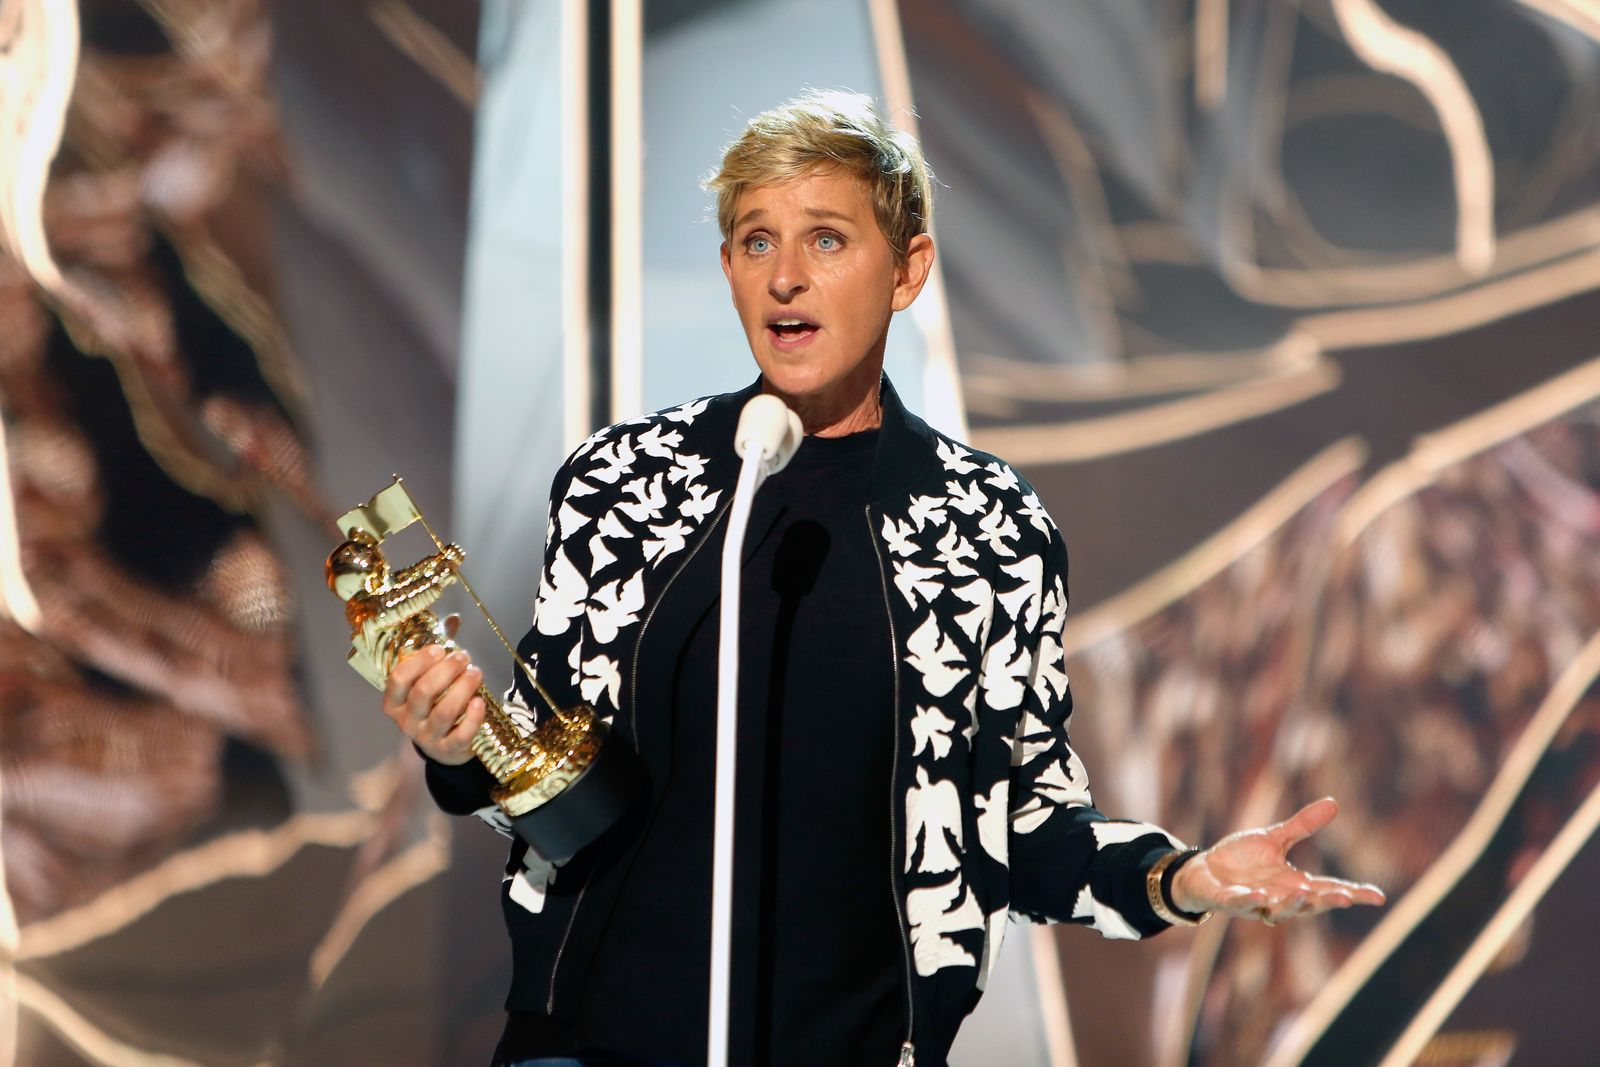 Ellen DeGeneres captured at the 2017 Video Music Awards/Photo:Getty Images